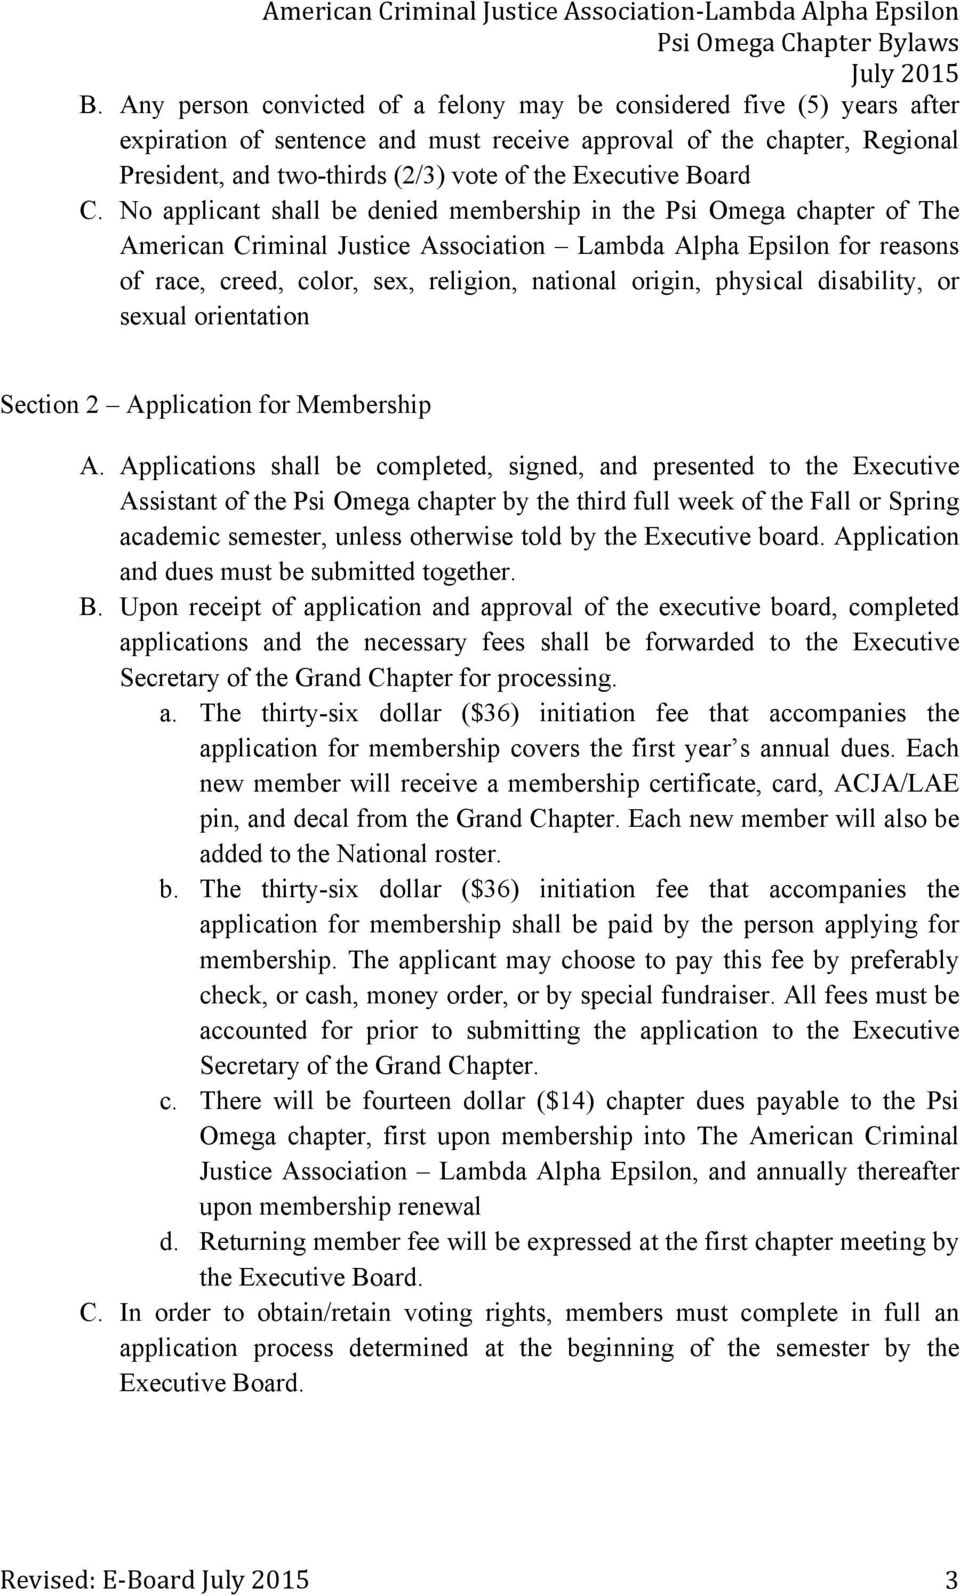 No applicant shall be denied membership in the Psi Omega chapter of The American Criminal Justice Association Lambda Alpha Epsilon for reasons of race, creed, color, sex, religion, national origin,